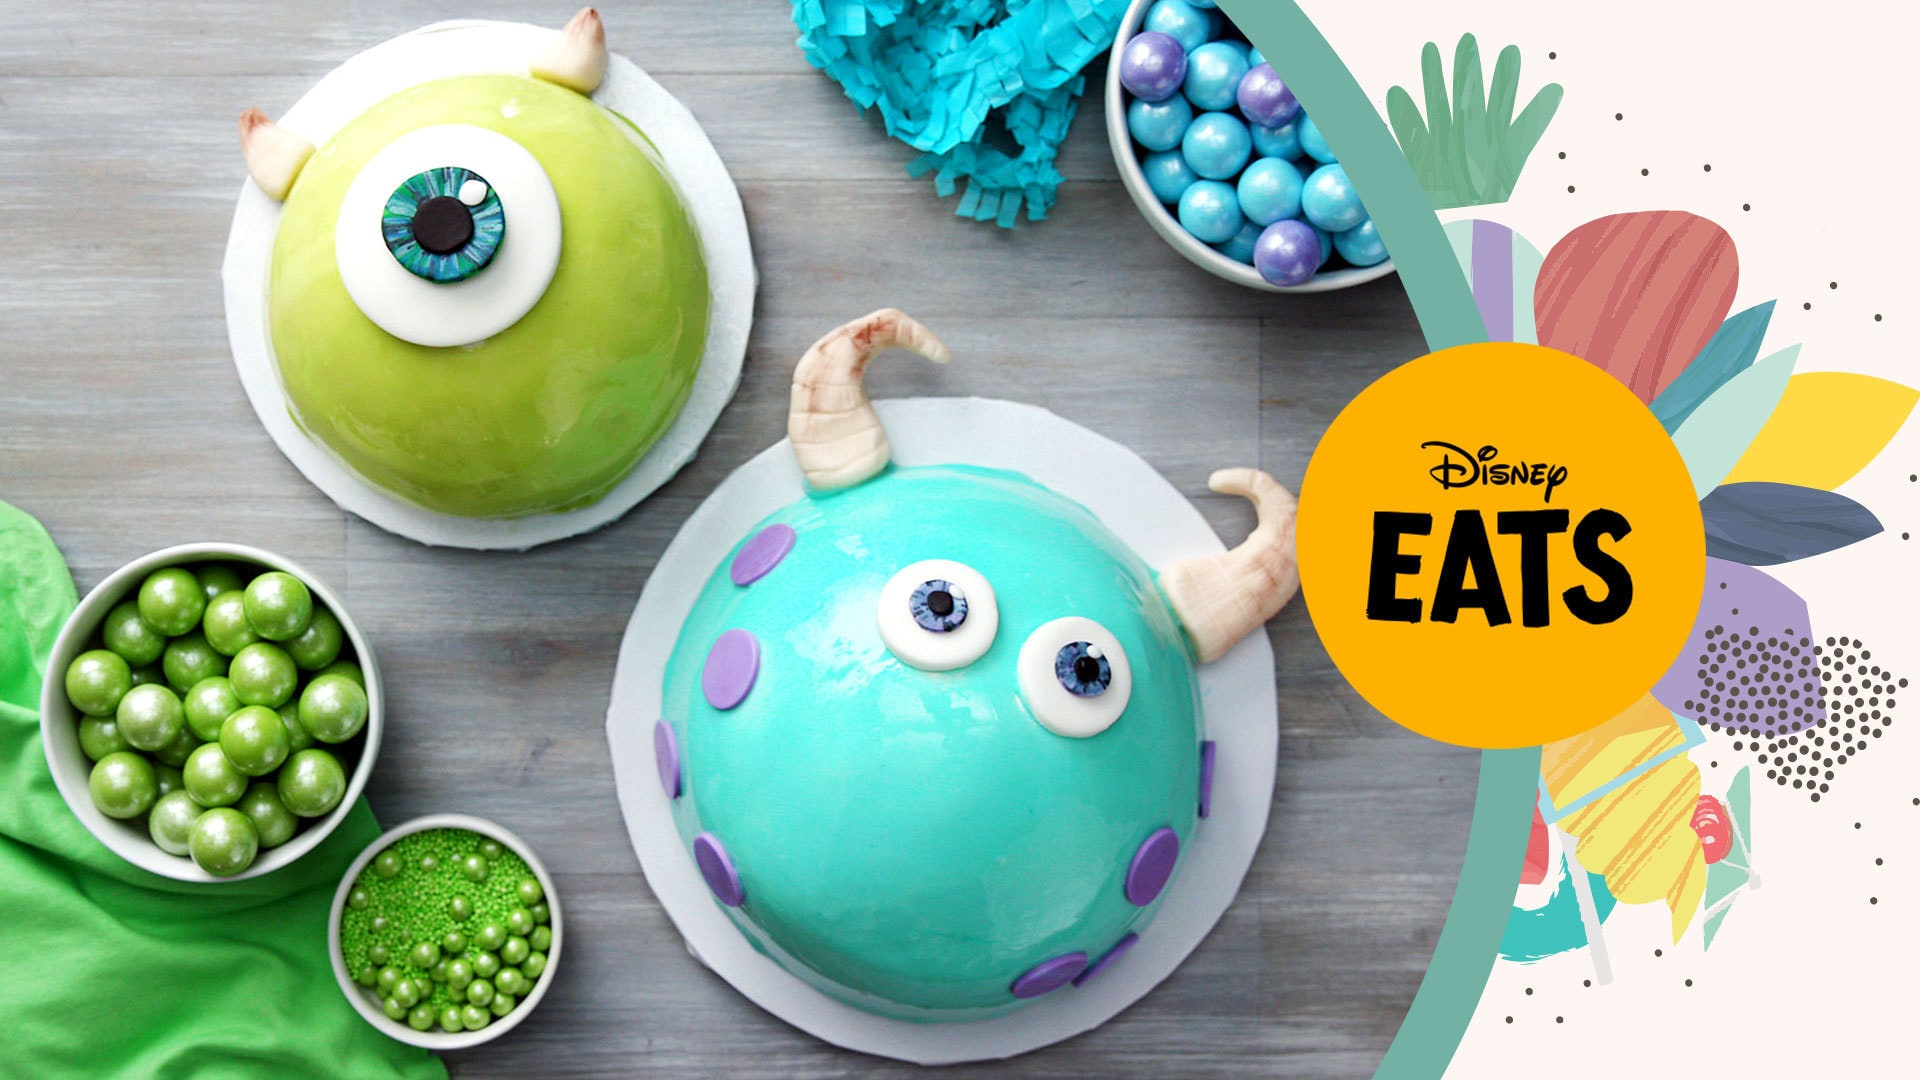 Mike and Sulley Mirror Glaze Cakes | Disney Eats